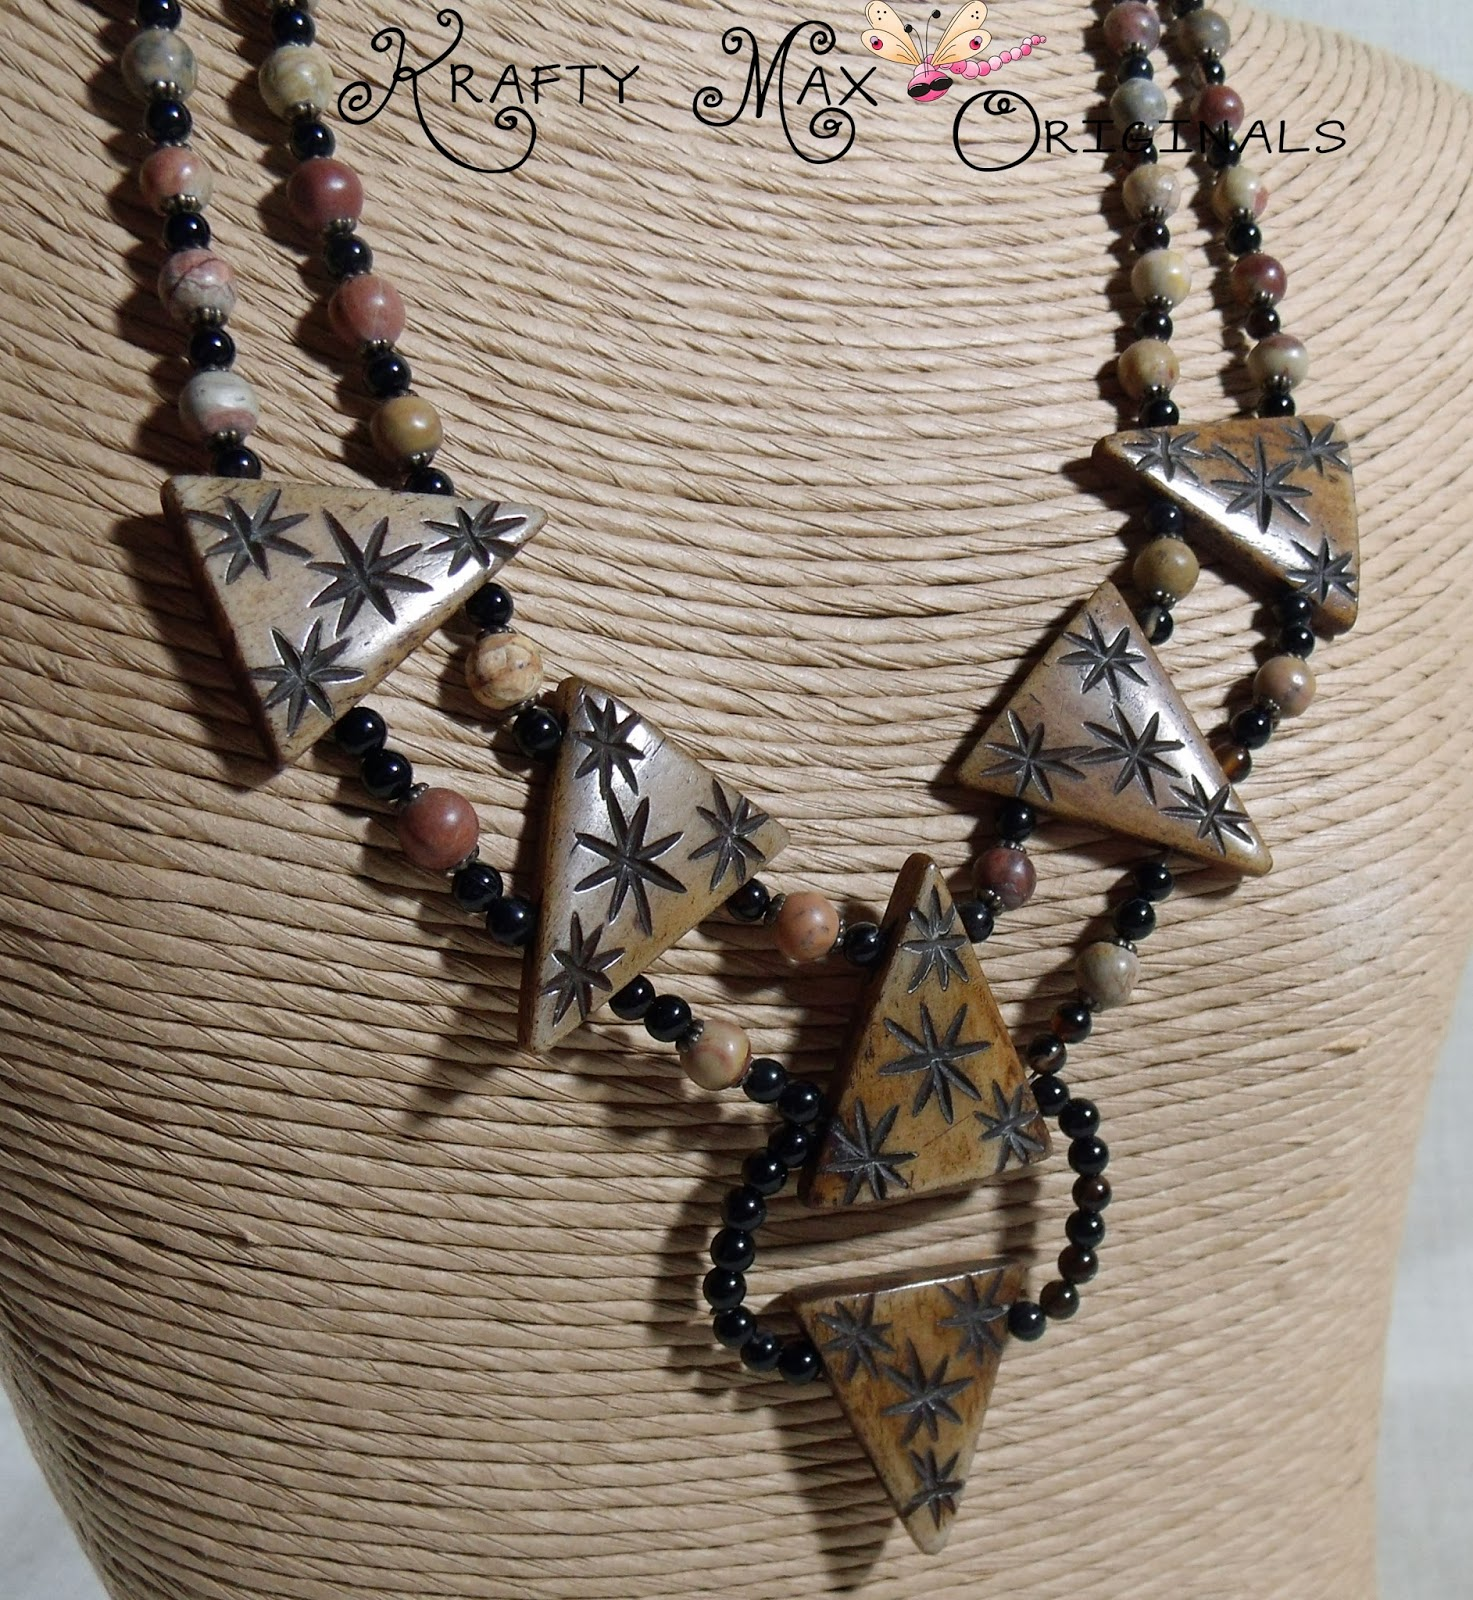 http://www.lajuliet.com/index.php/2013-01-04-15-21-51/ad/gemstone,92/exclusive-bone-triangle-detailed-and-gemstone-necklace-set-a-krafty-max-original-design,133